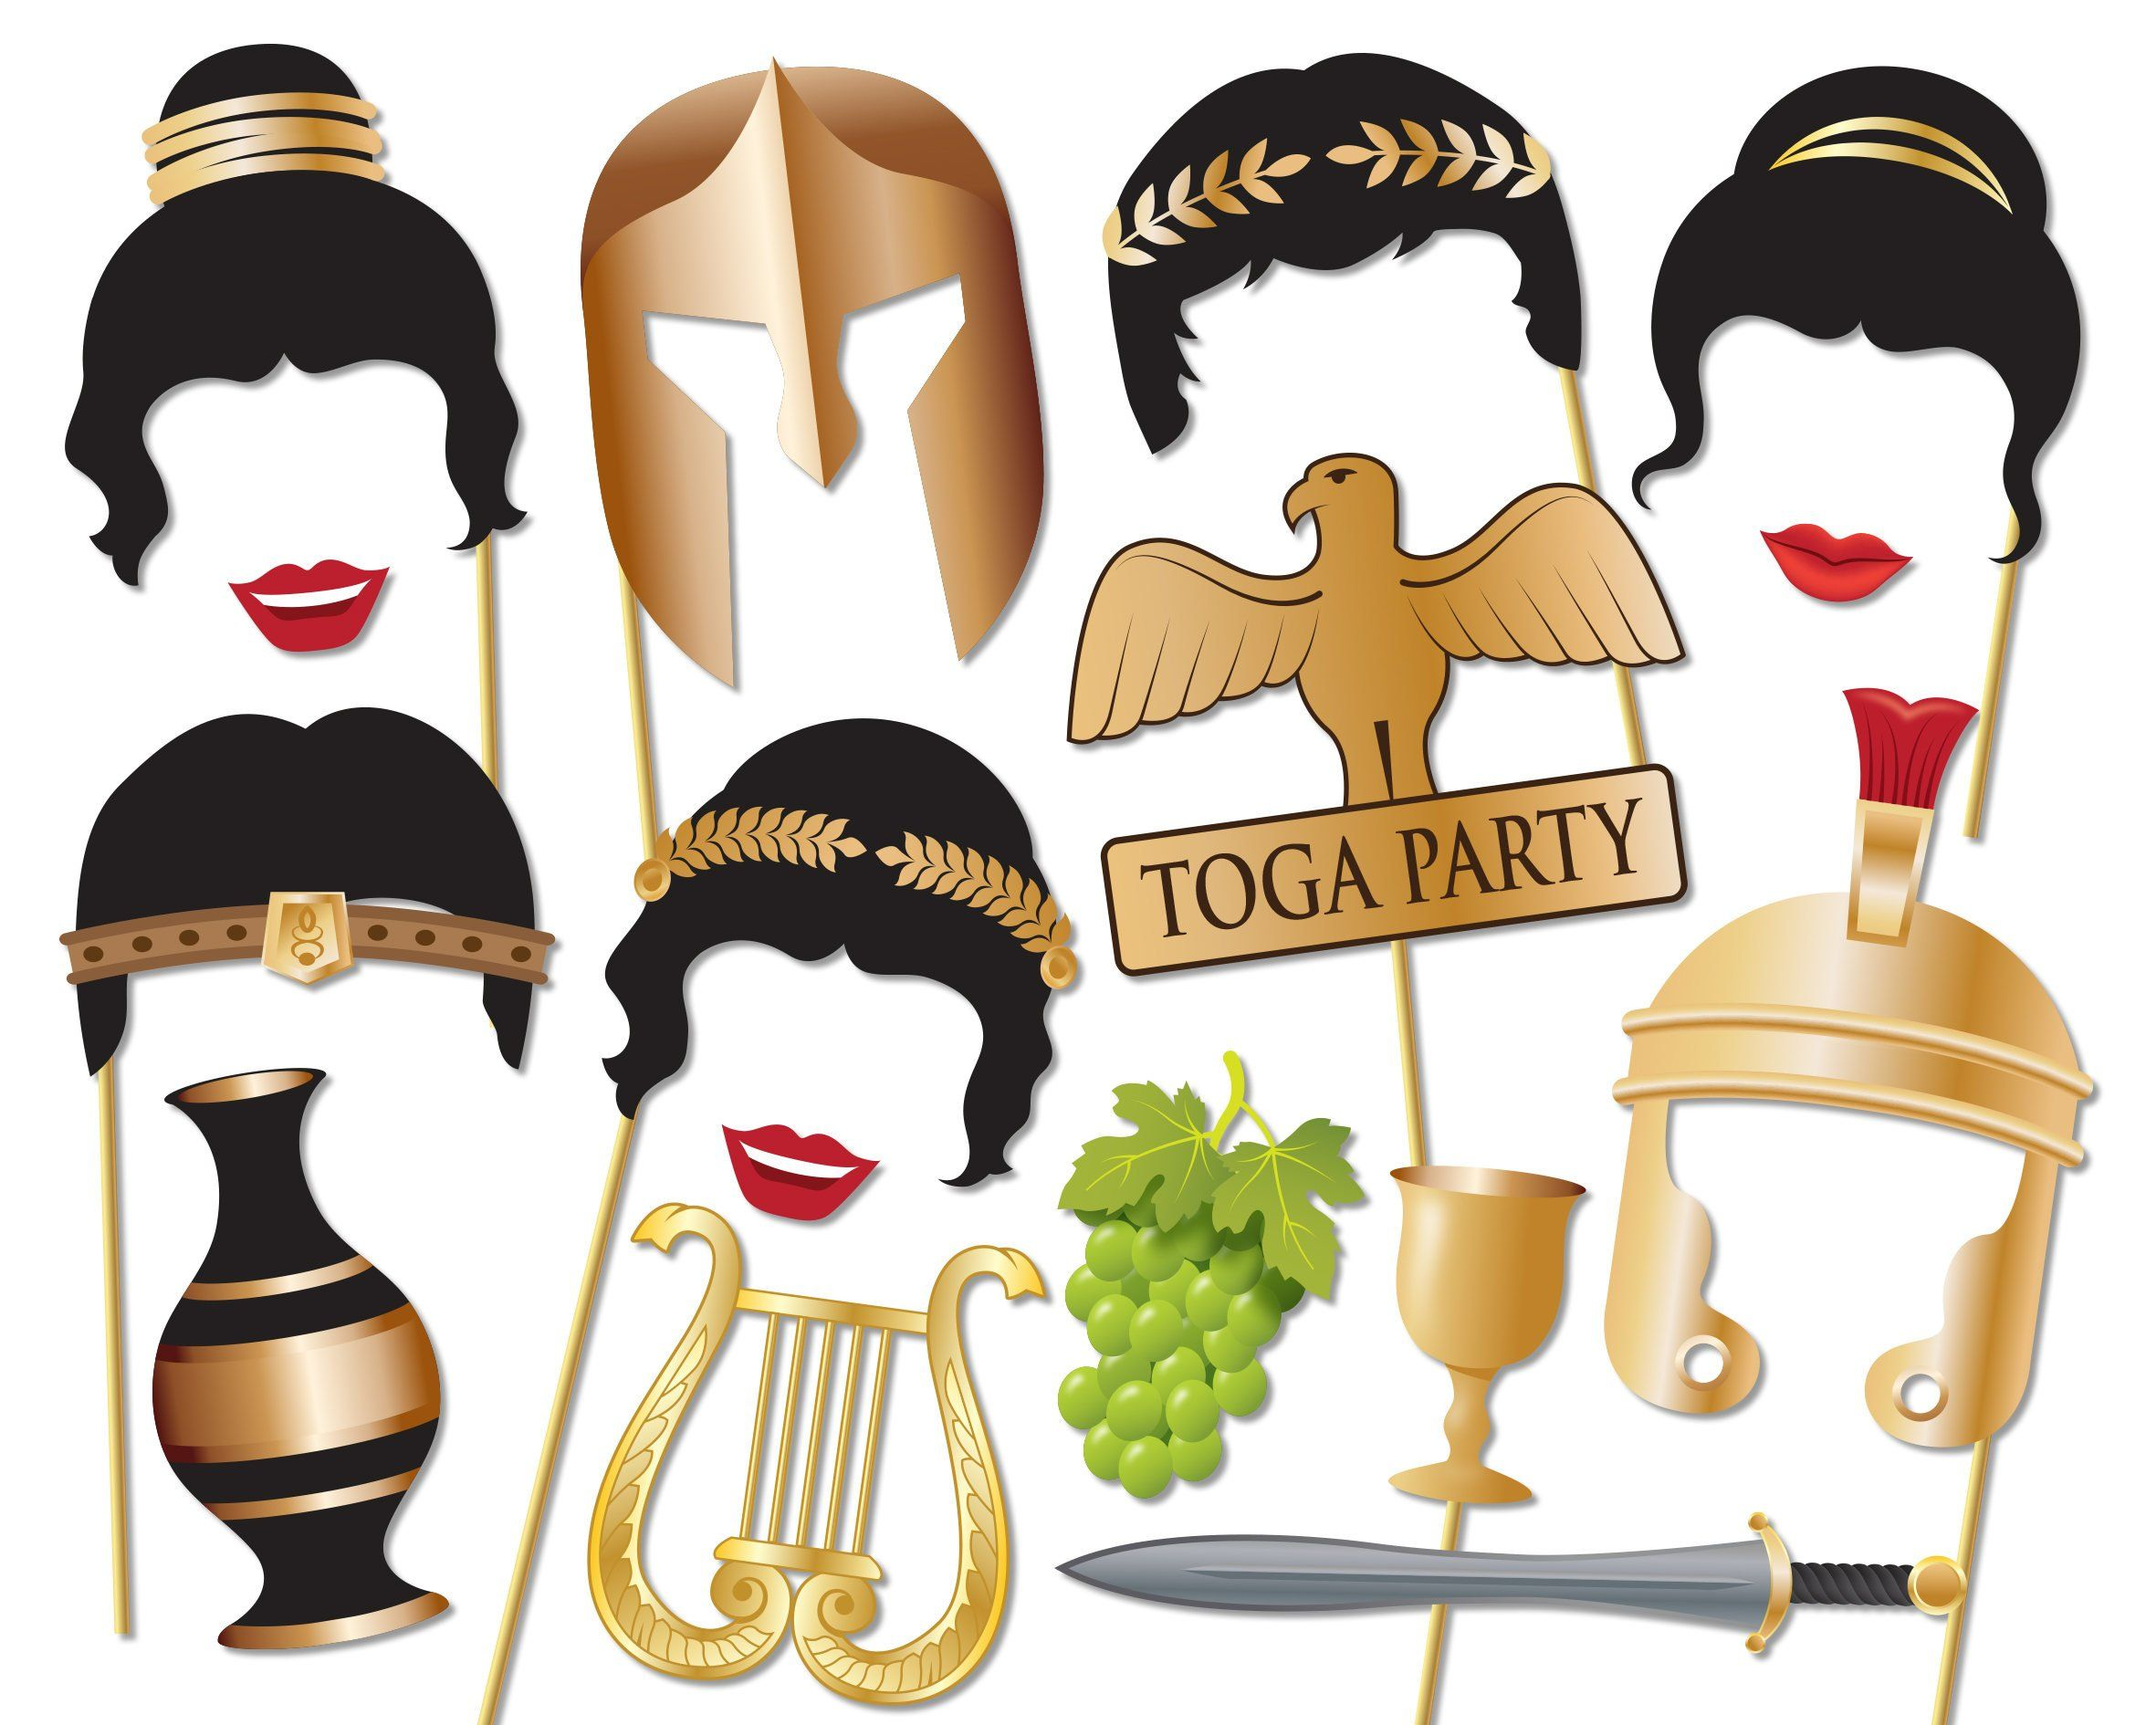 Toga Party Photo booth Props Set.